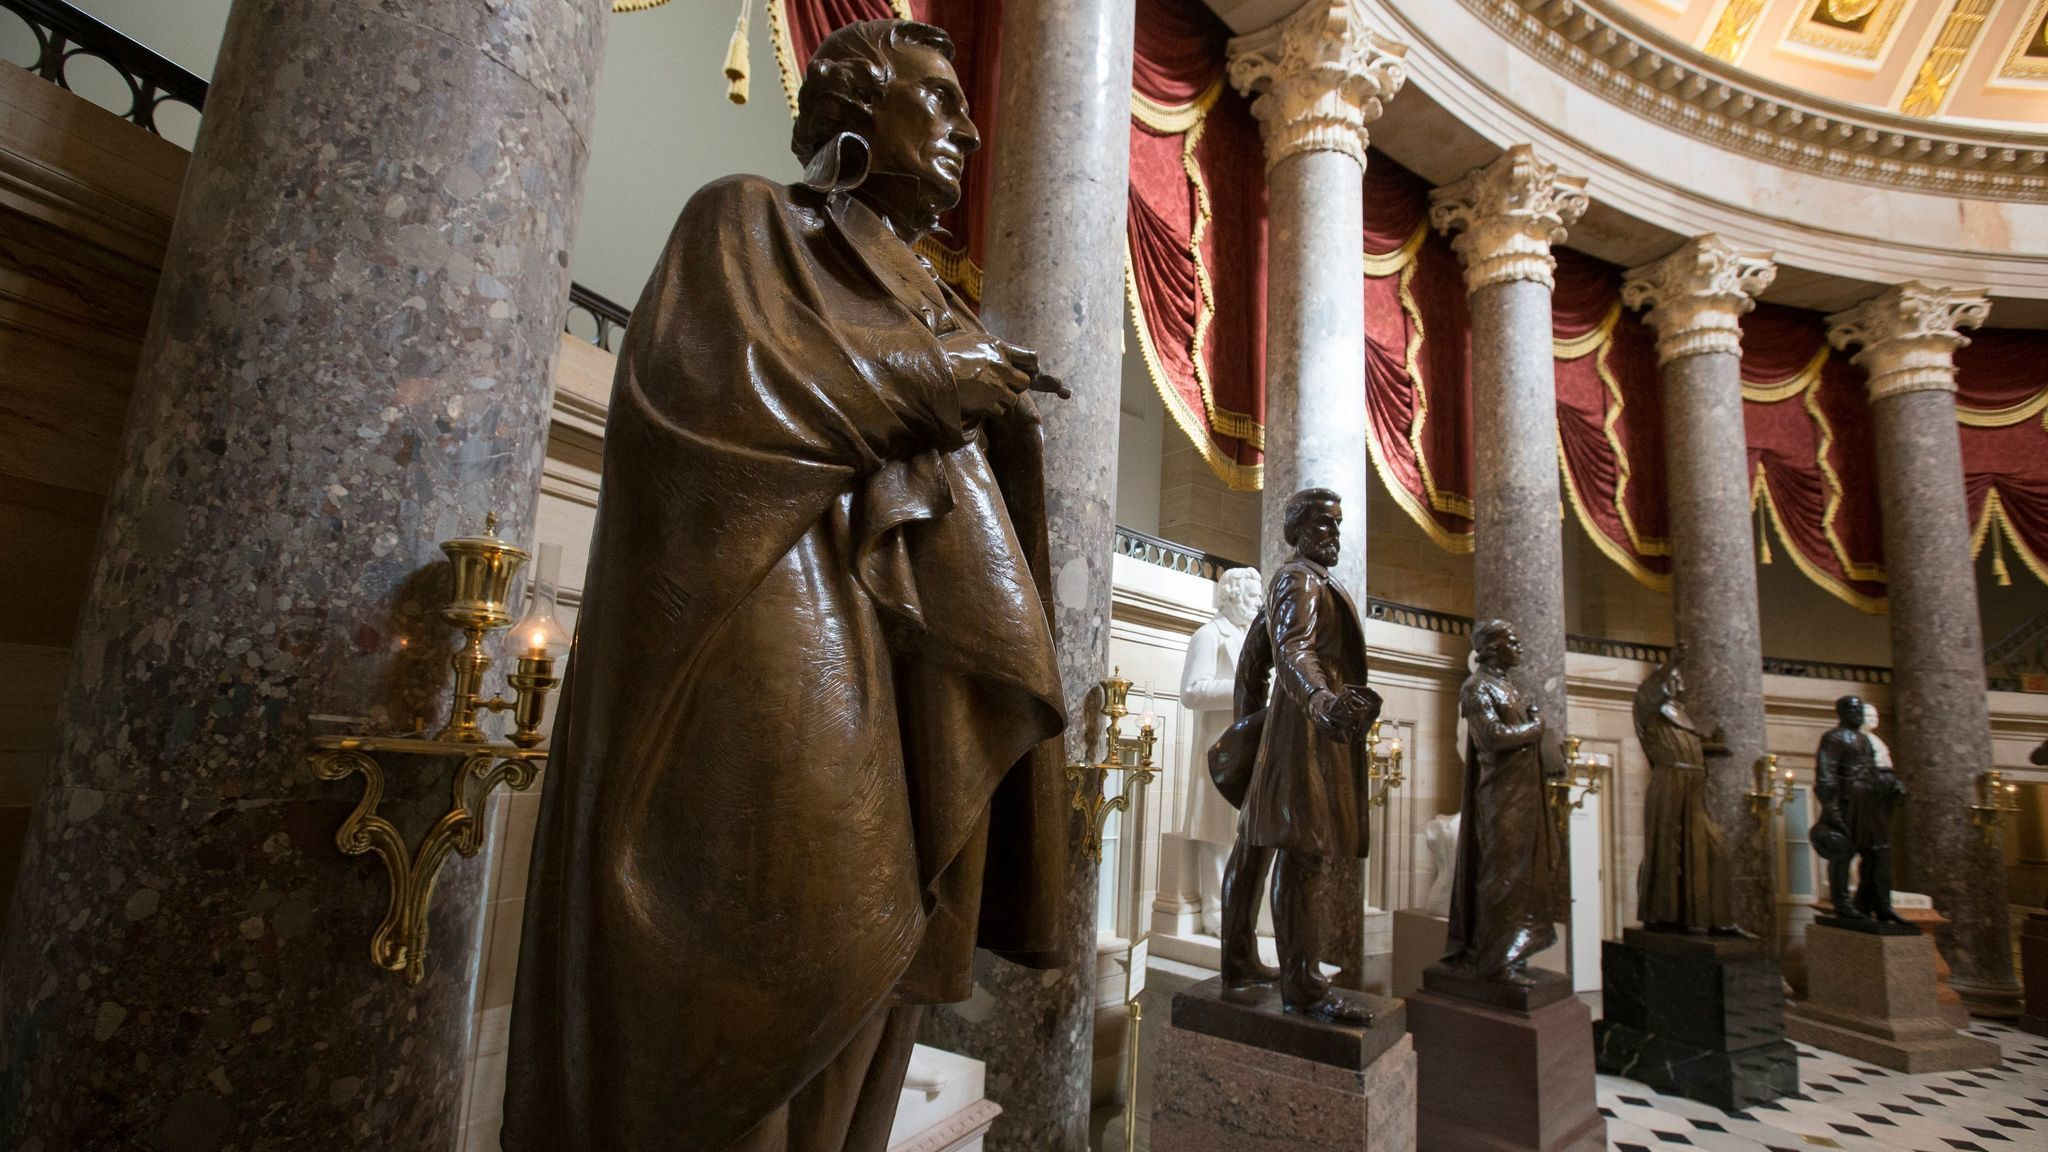 Why On Earth Do We Have Confederate Statues In The U.S. Capitol?